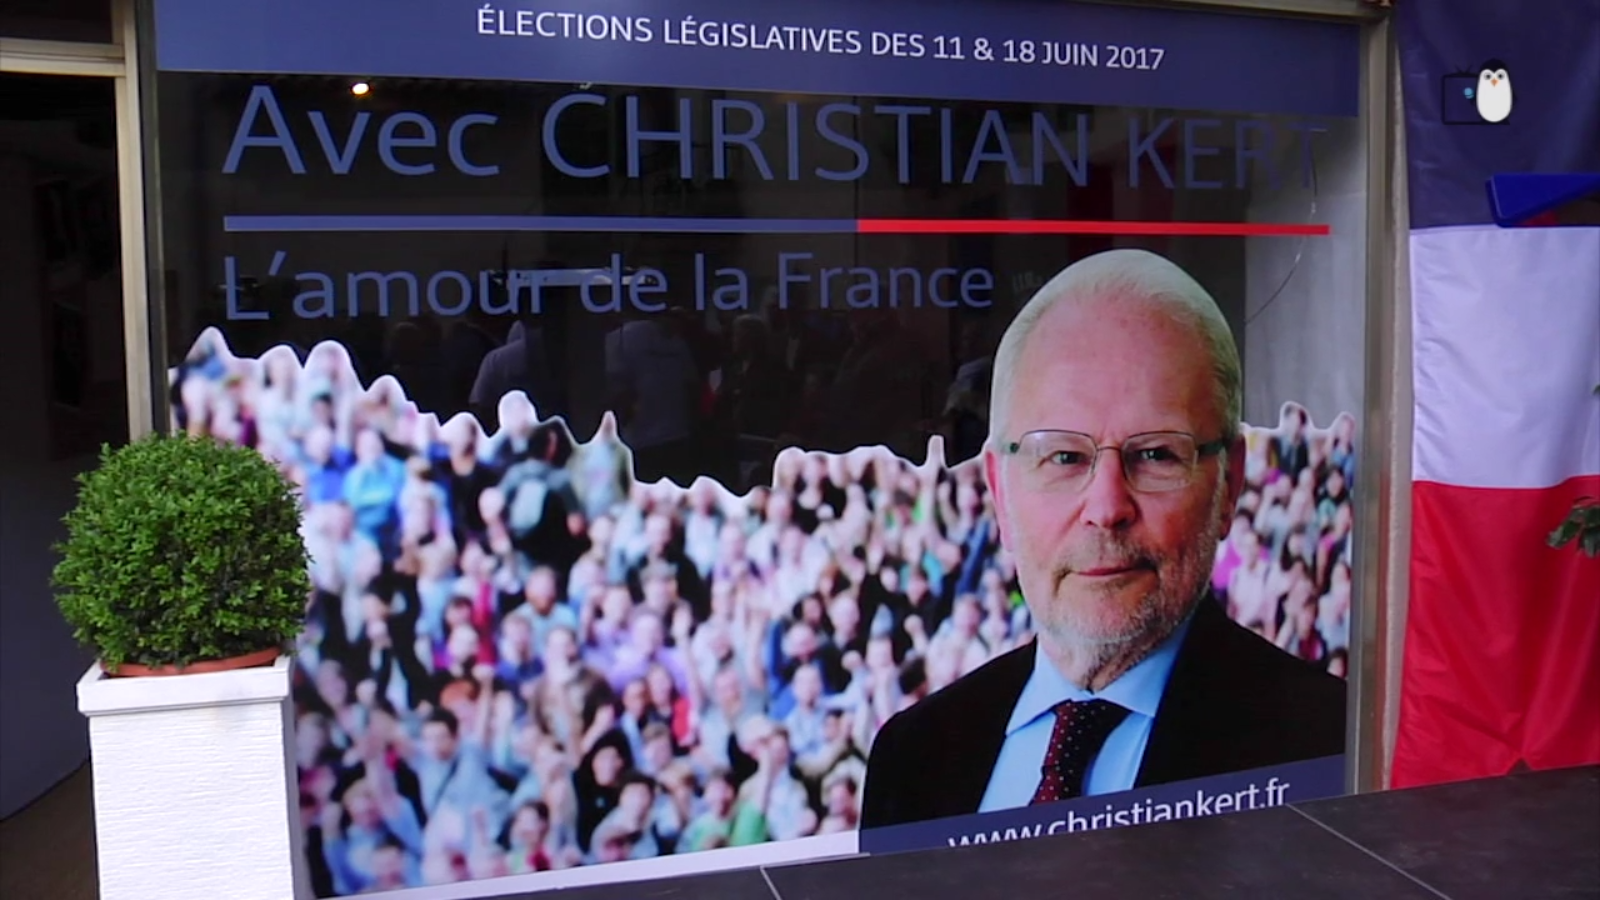 Législatives 2017 : Christian Kert inaugure sa permanence